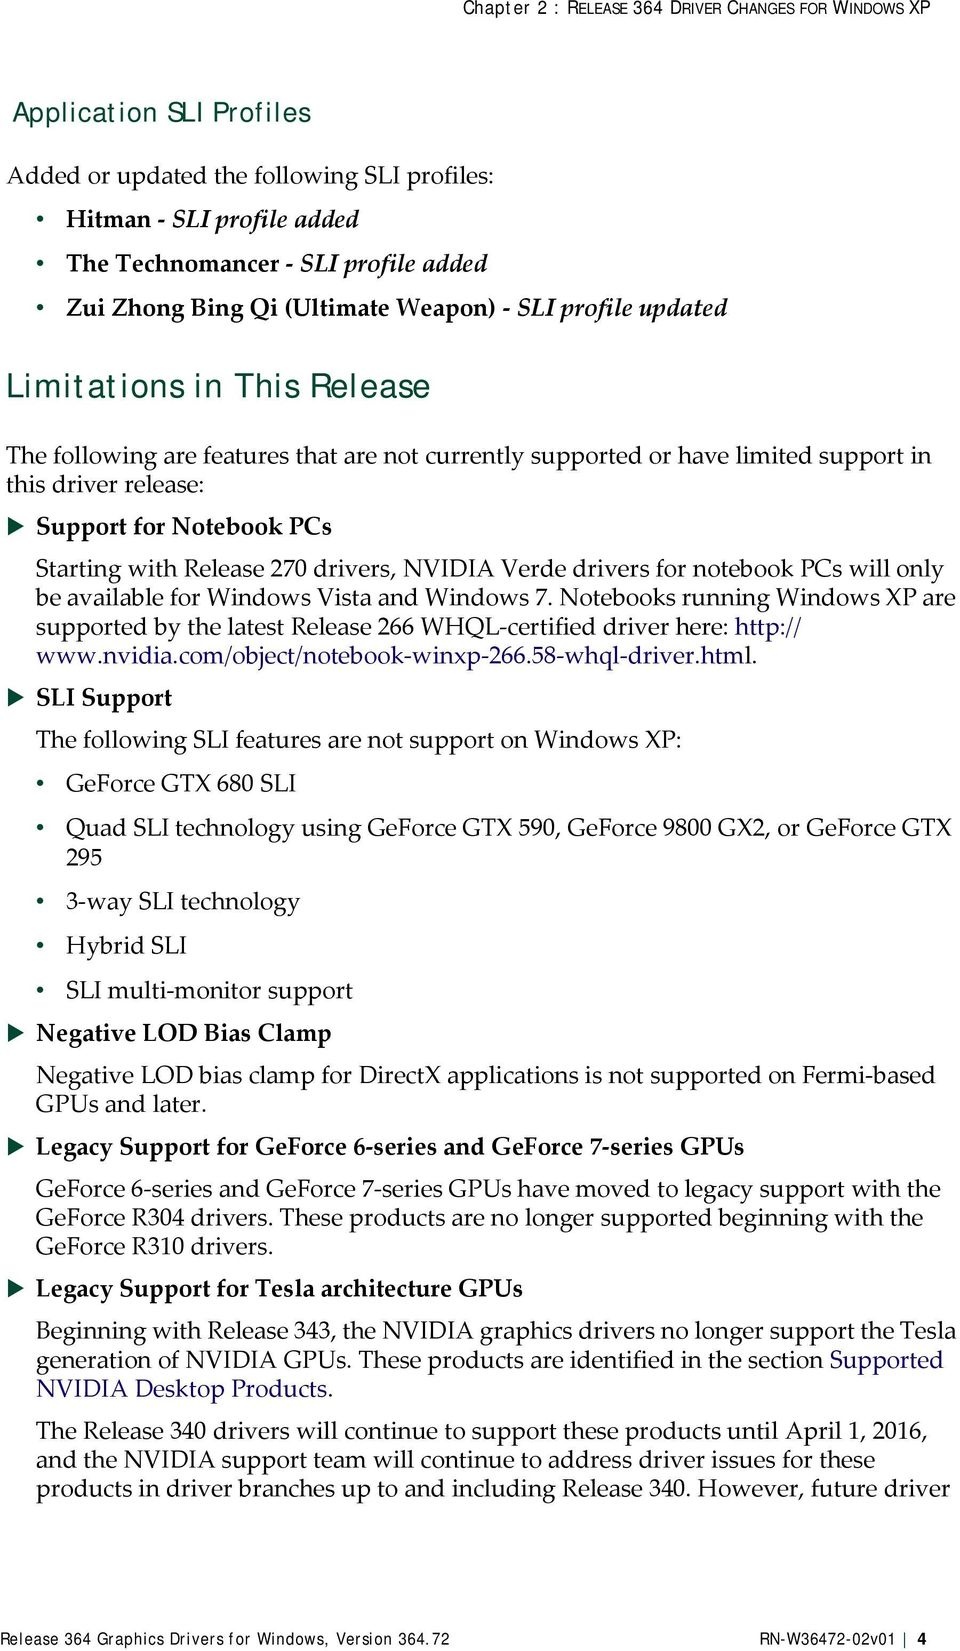 Release 364 Graphics Drivers for Windows, Version - PDF